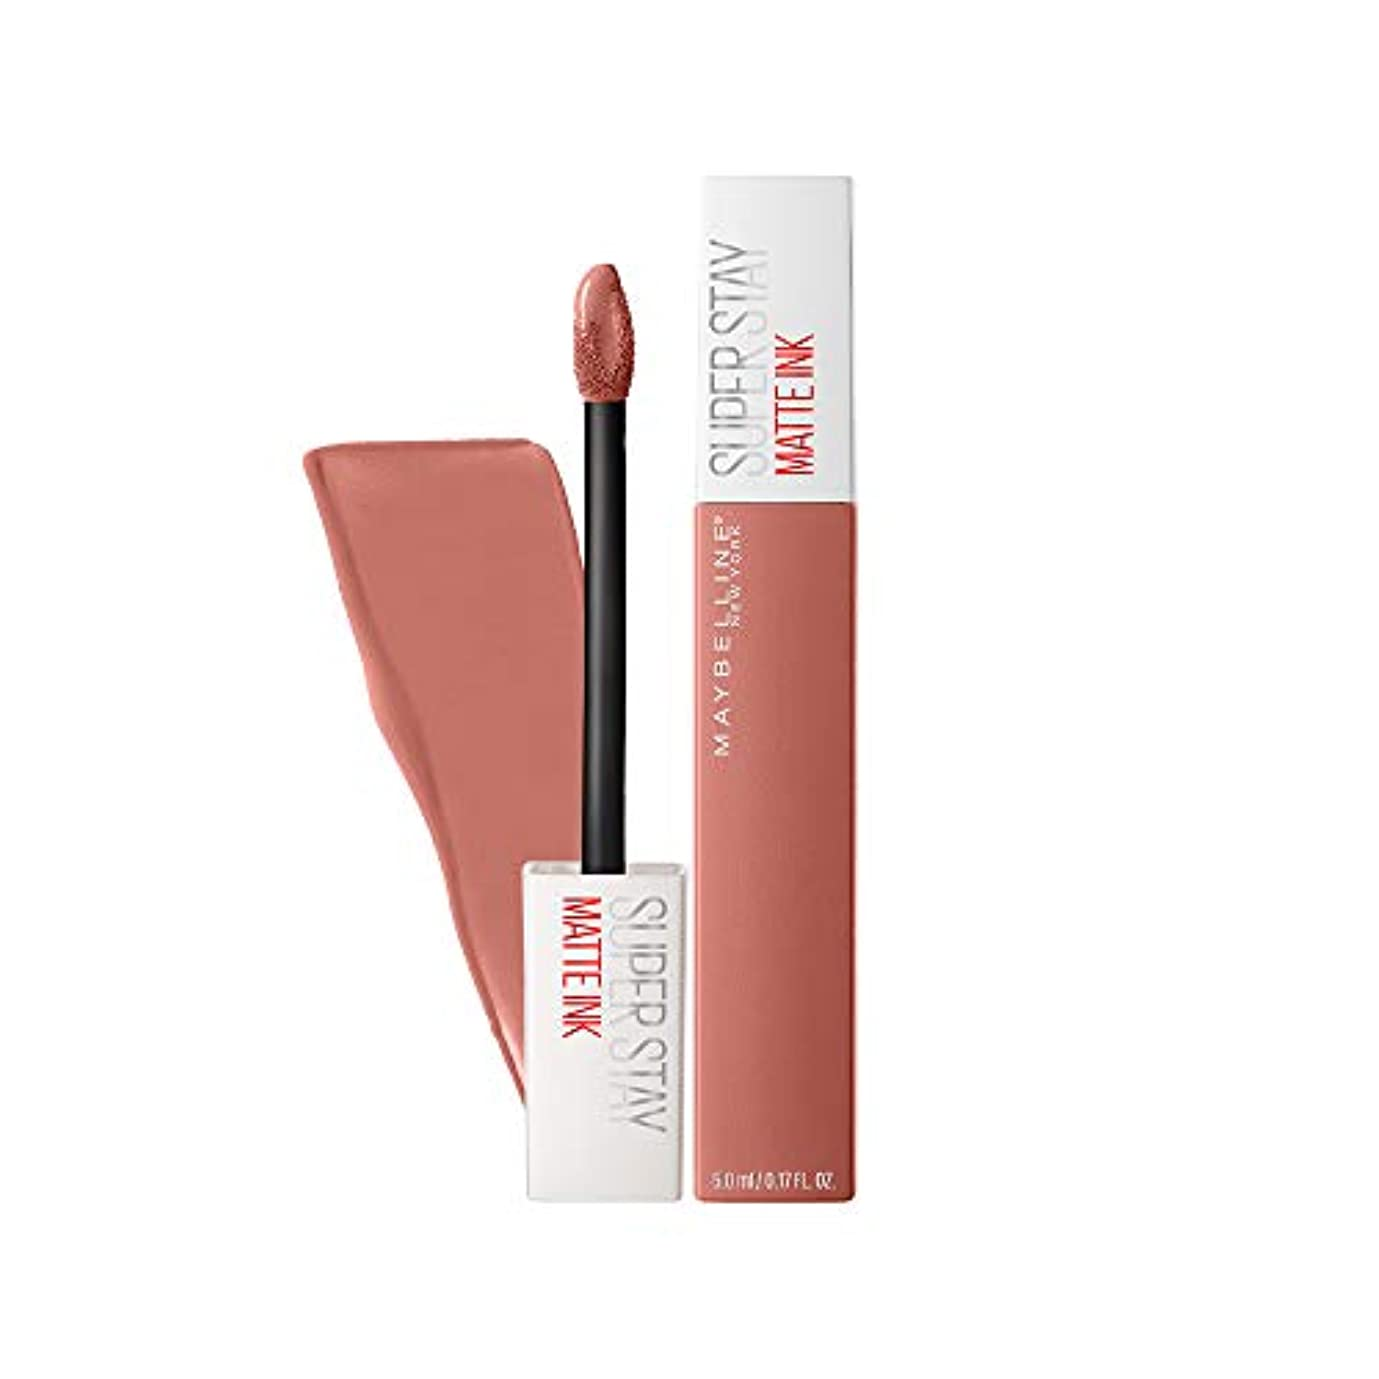 MAYBELLINE SuperStay Matte Ink - Seductress (並行輸入品)